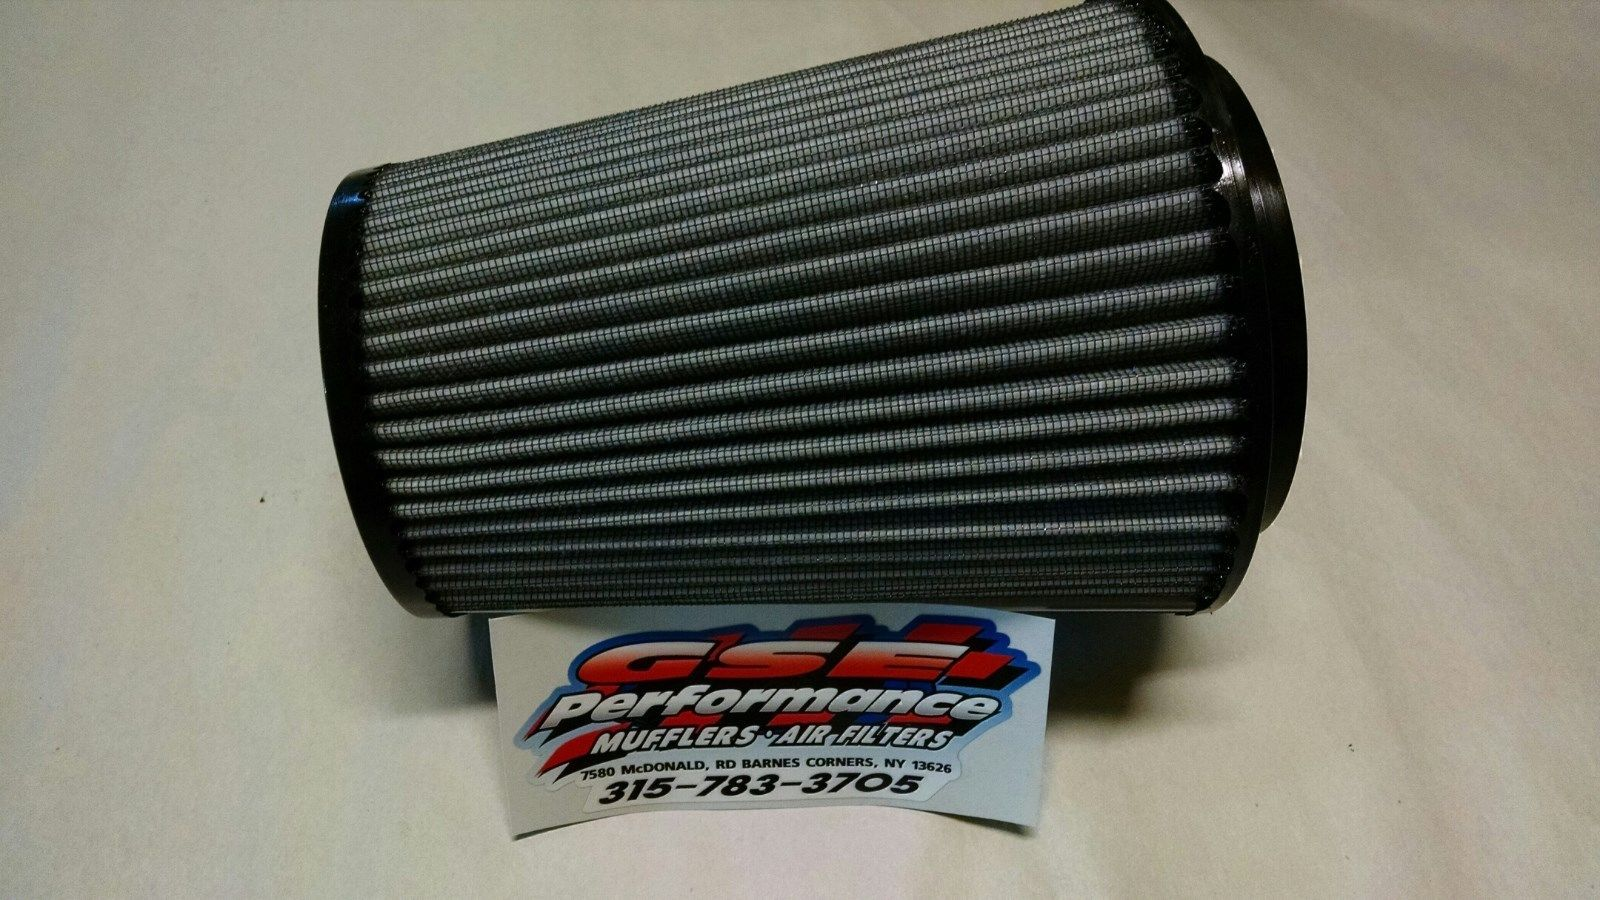 Honda Trx450r Trx450er High Flow Air Filter Gse Performance Webb Fuel Filters Lightbox